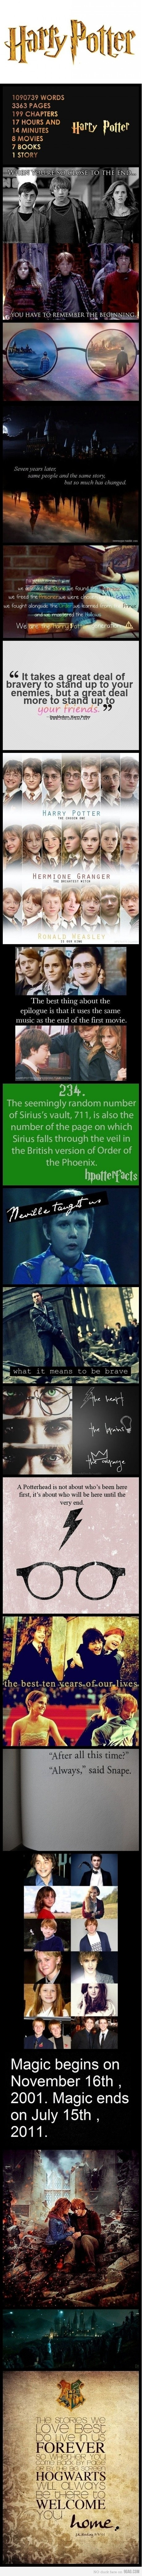 10 years, asgf, harry, harry potter, hero